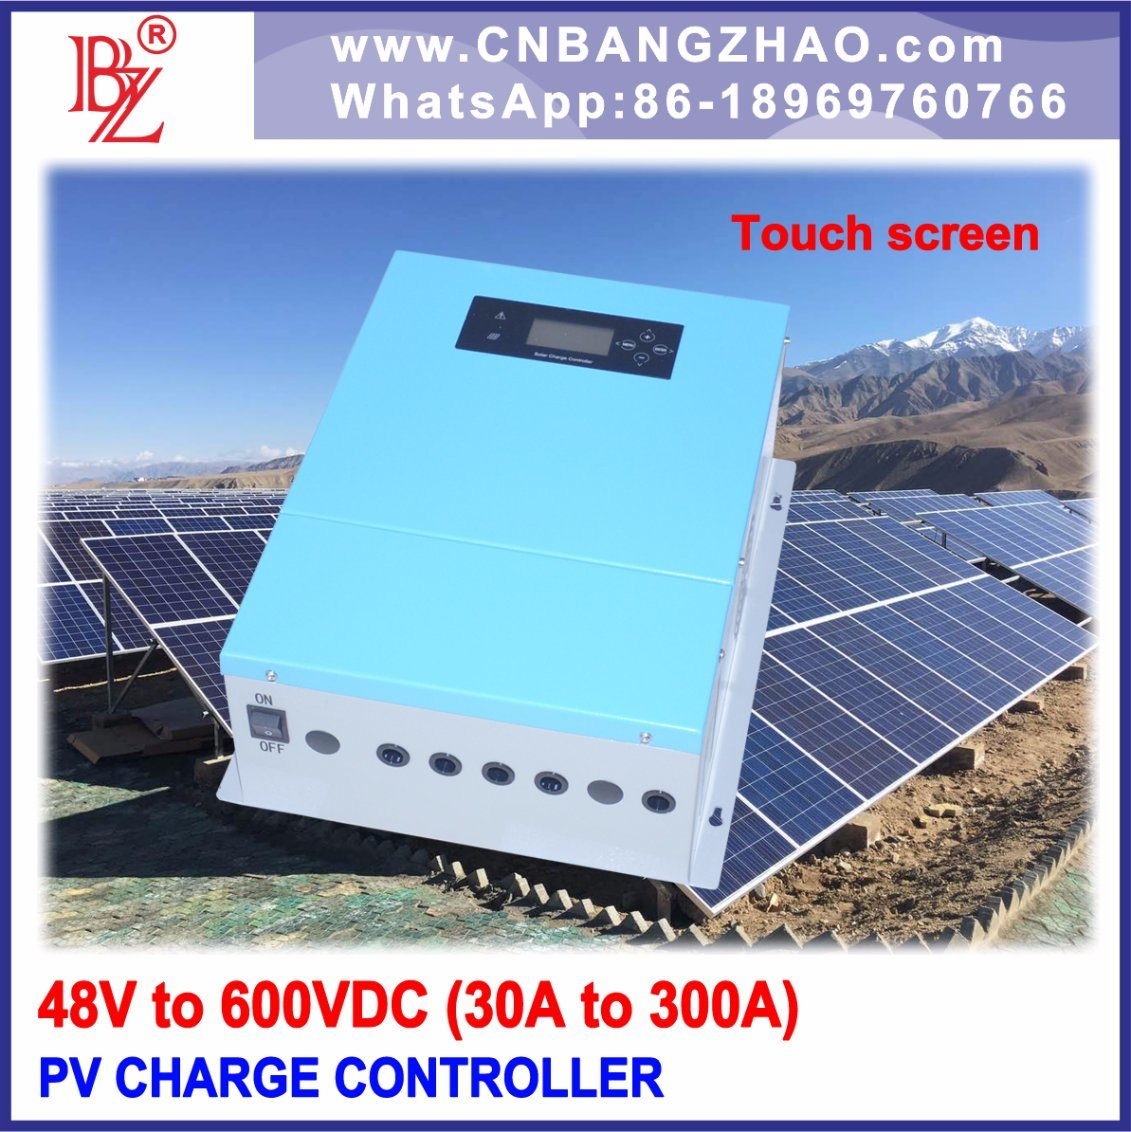 6000W 120V-50A Solar Panels Charge Controller-PWM Control Charger